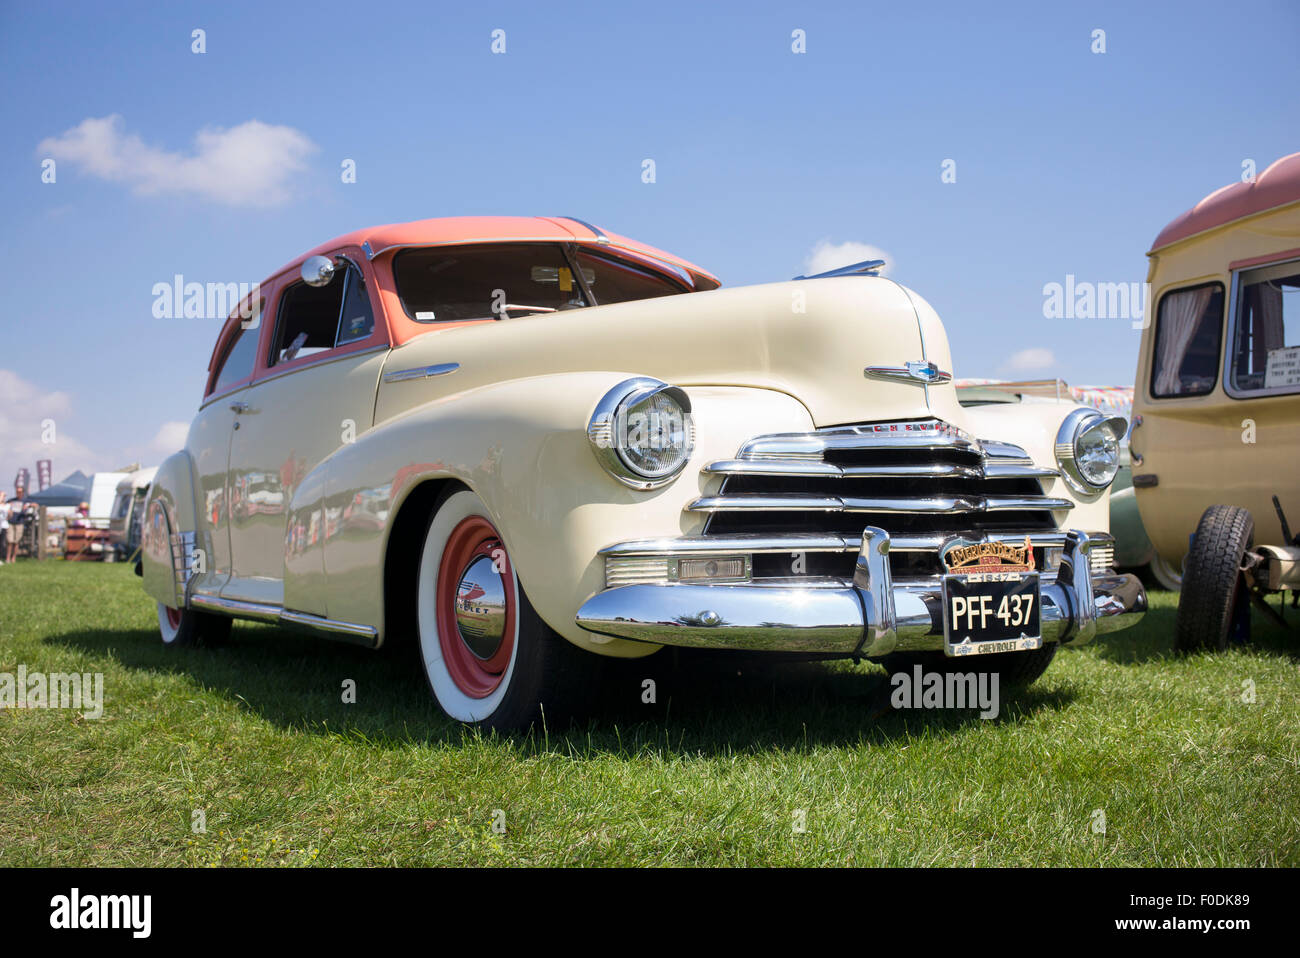 1947 Chevrolet Stylemaster coupe car at a vintage retro festival. UK - Stock Image